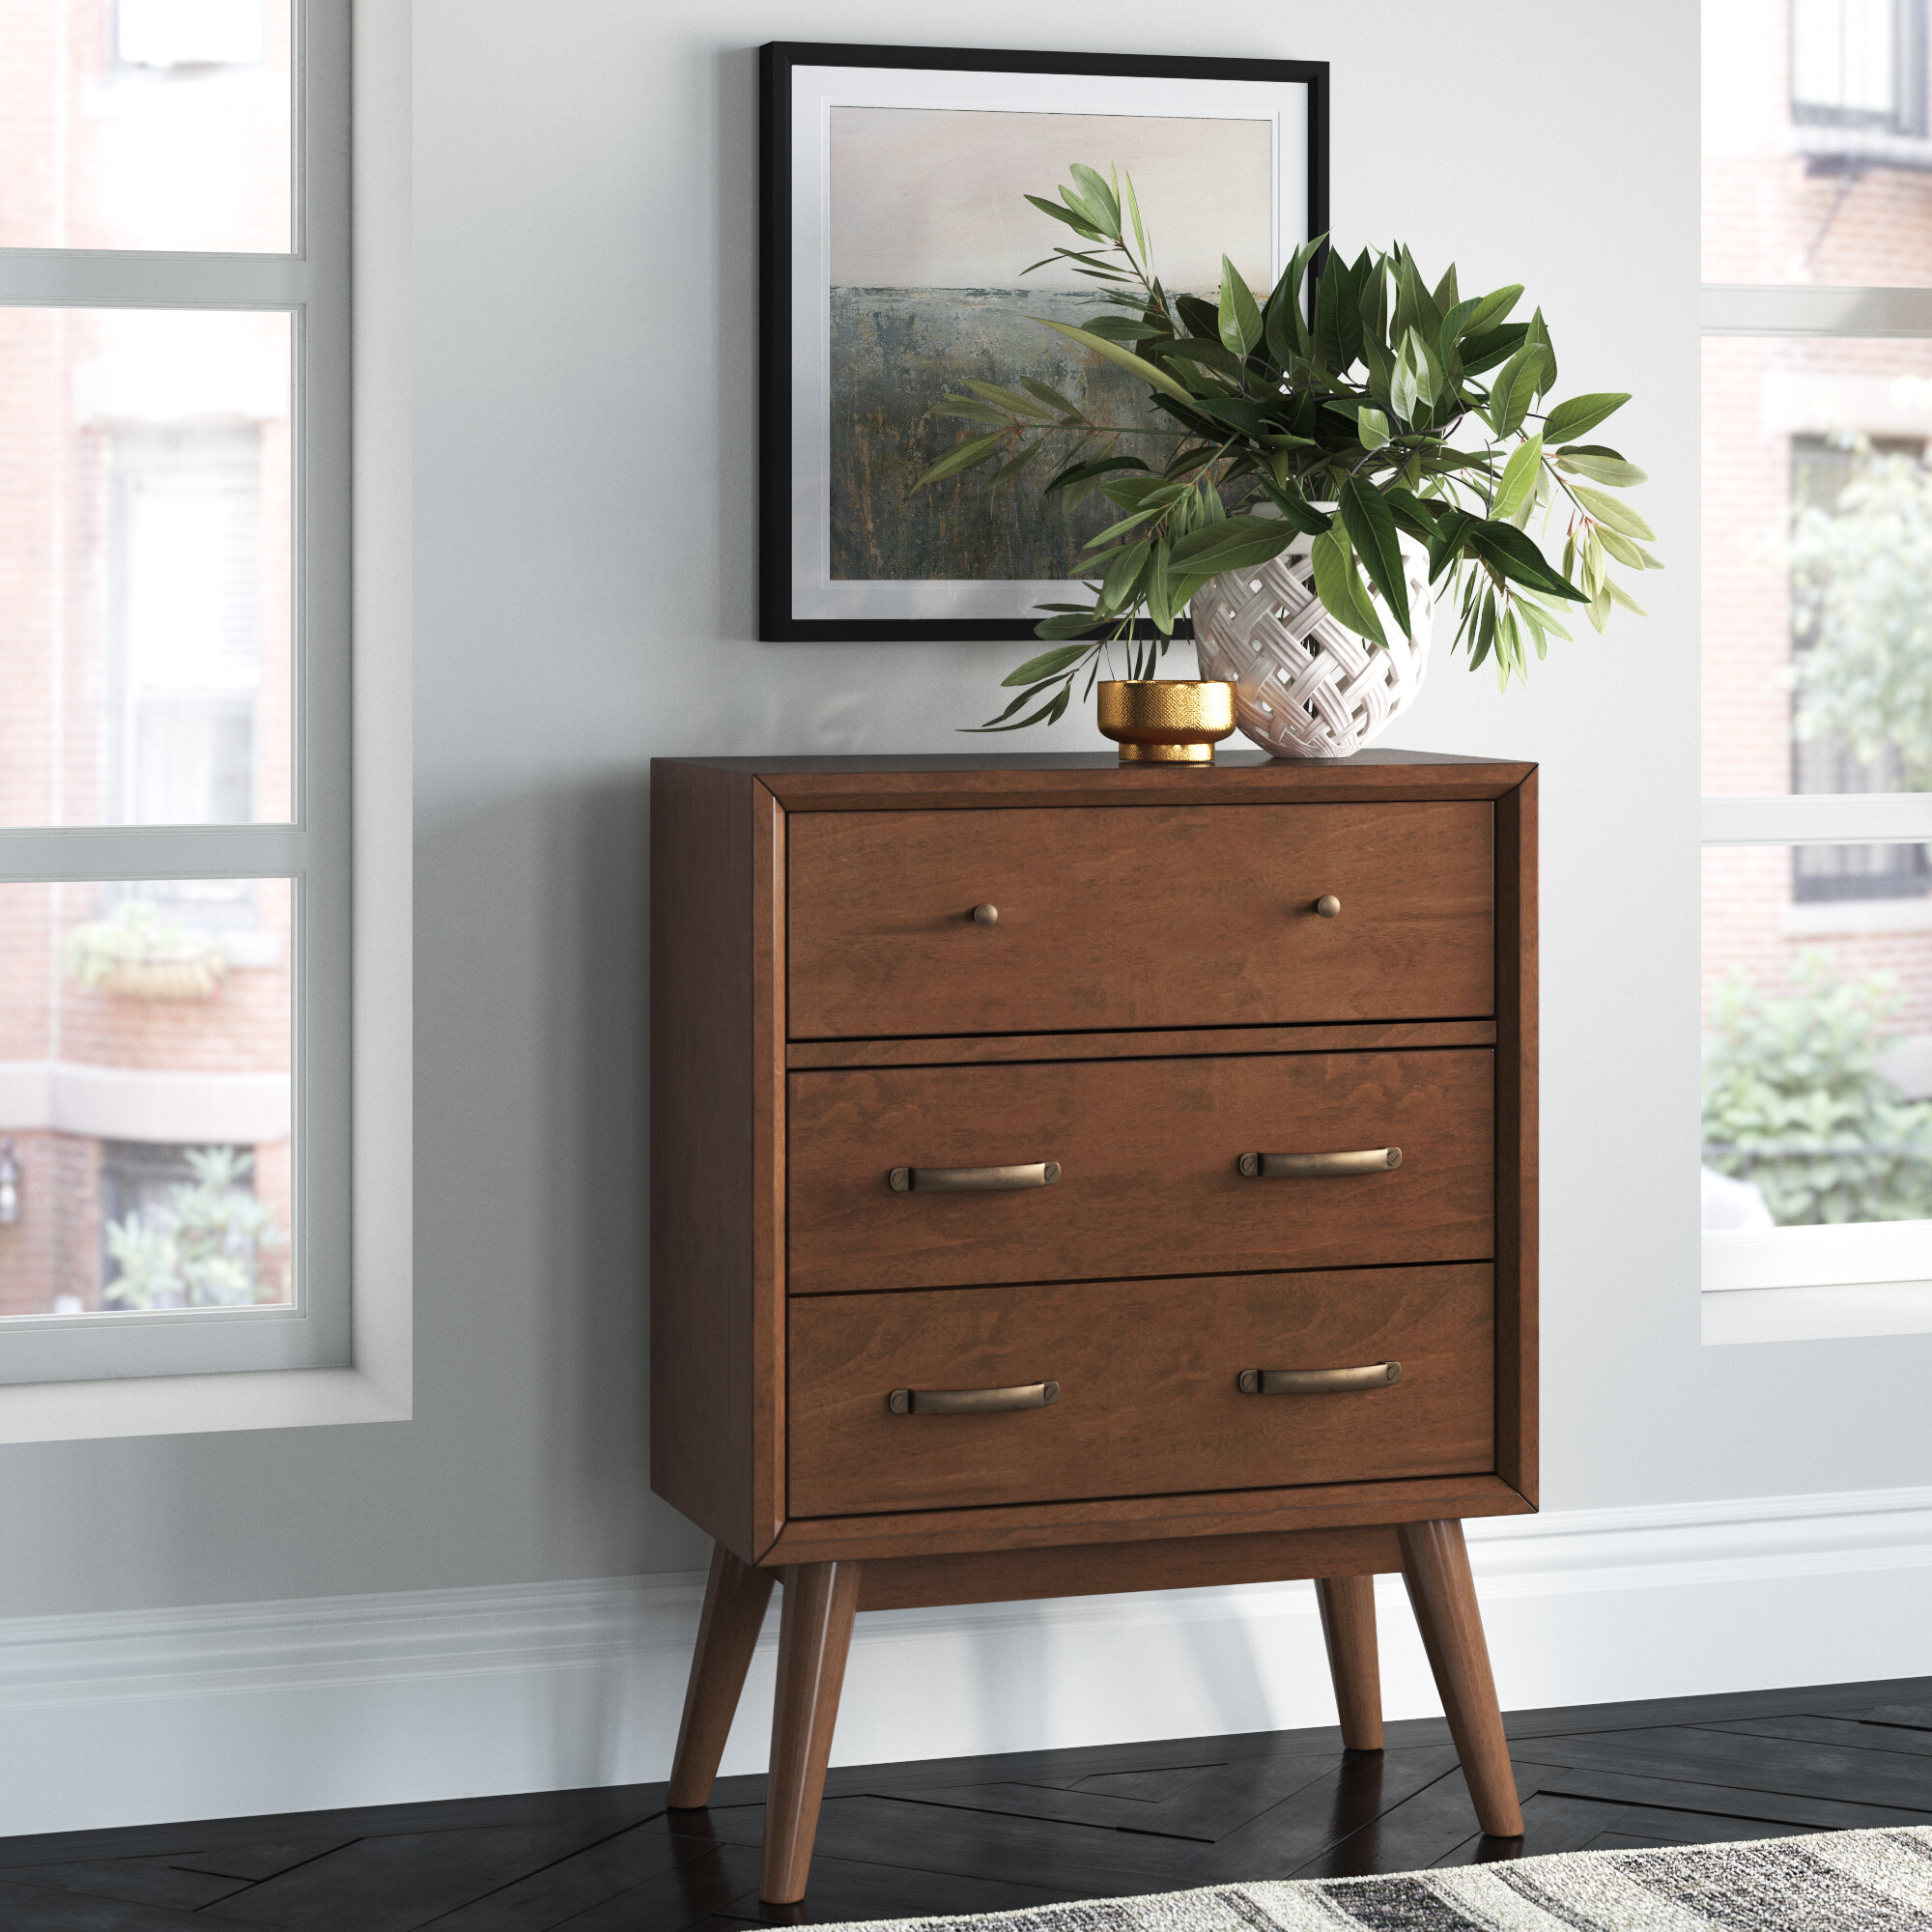 Carnell Mid Century Modern 3 Drawer Accent Chest Reviews